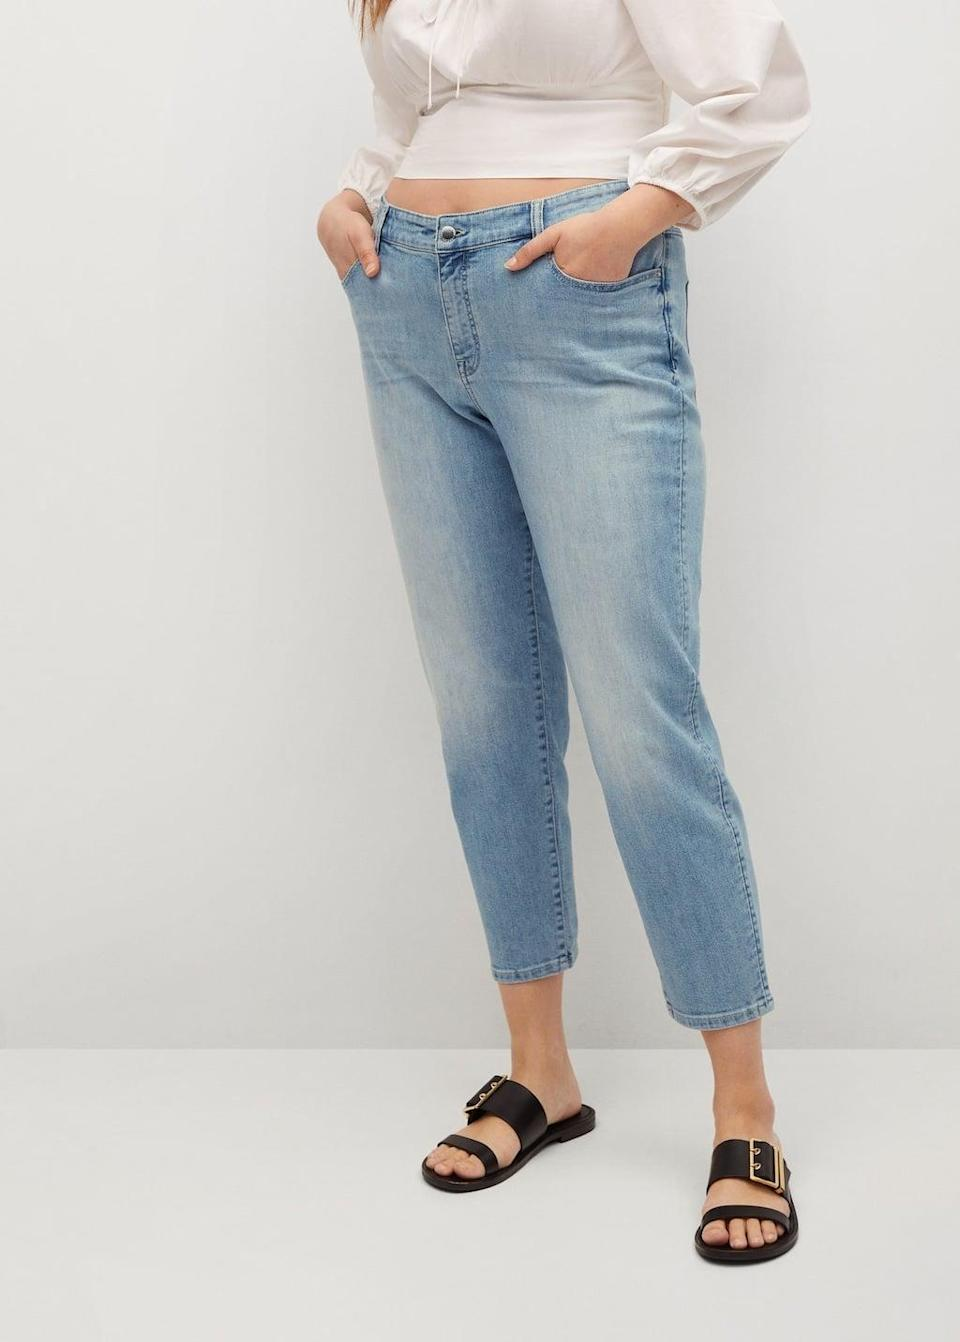 <p><span>Violeta by Mango's Relaxed Claudia Jeans</span> ($80) slouch just right.</p>